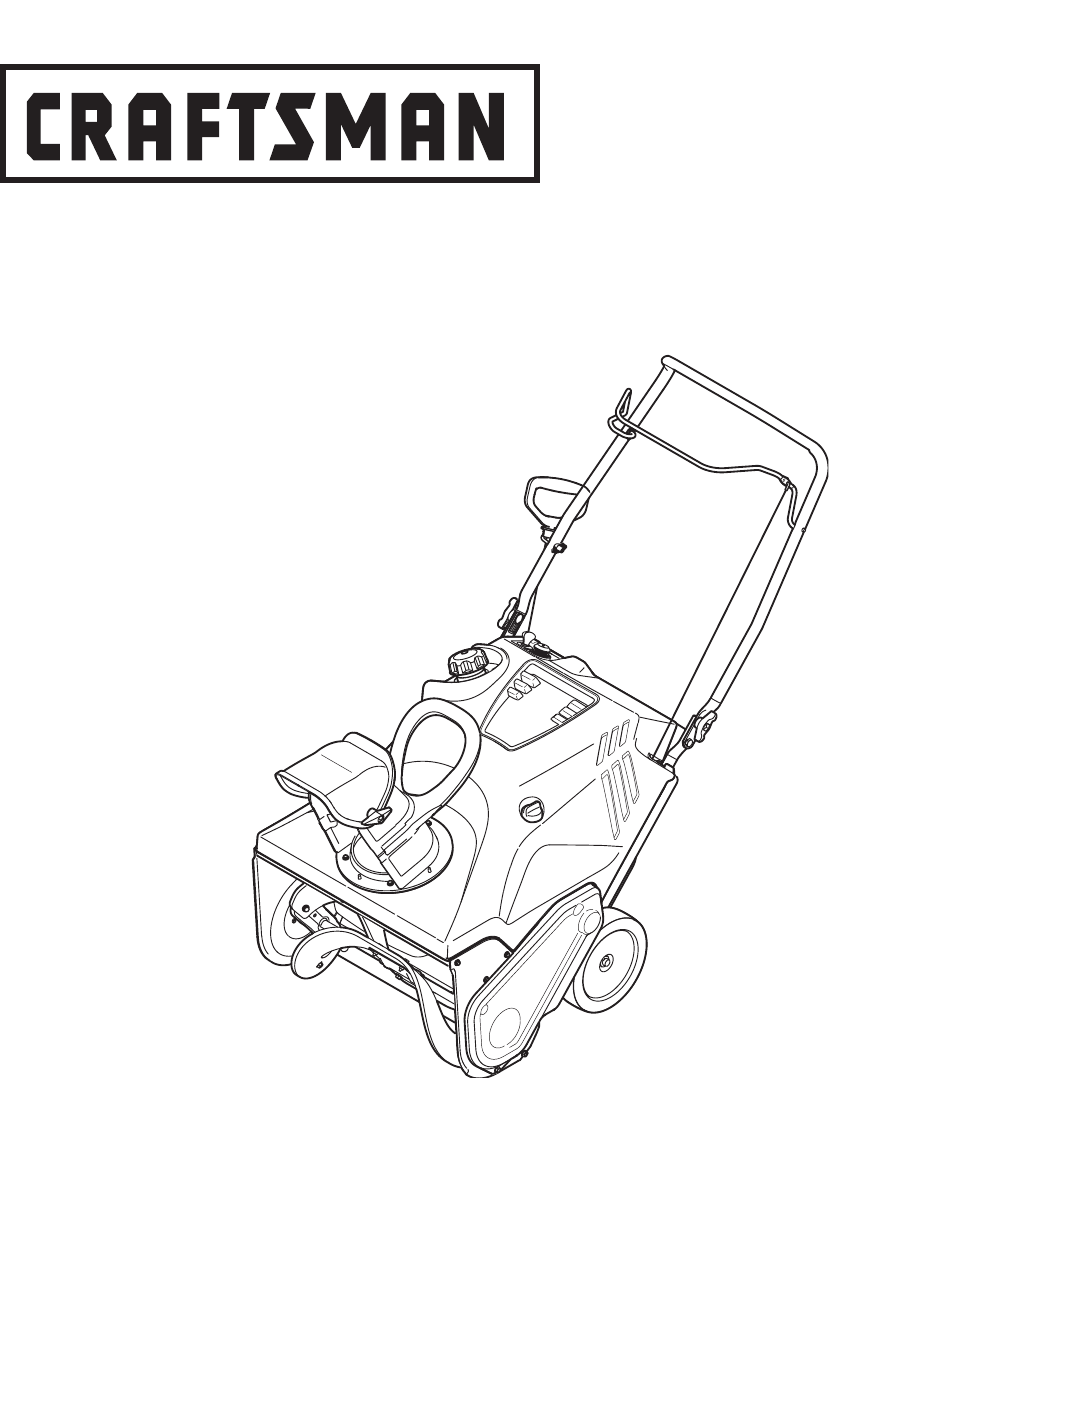 Craftsman Snow Blower 247 User Guide